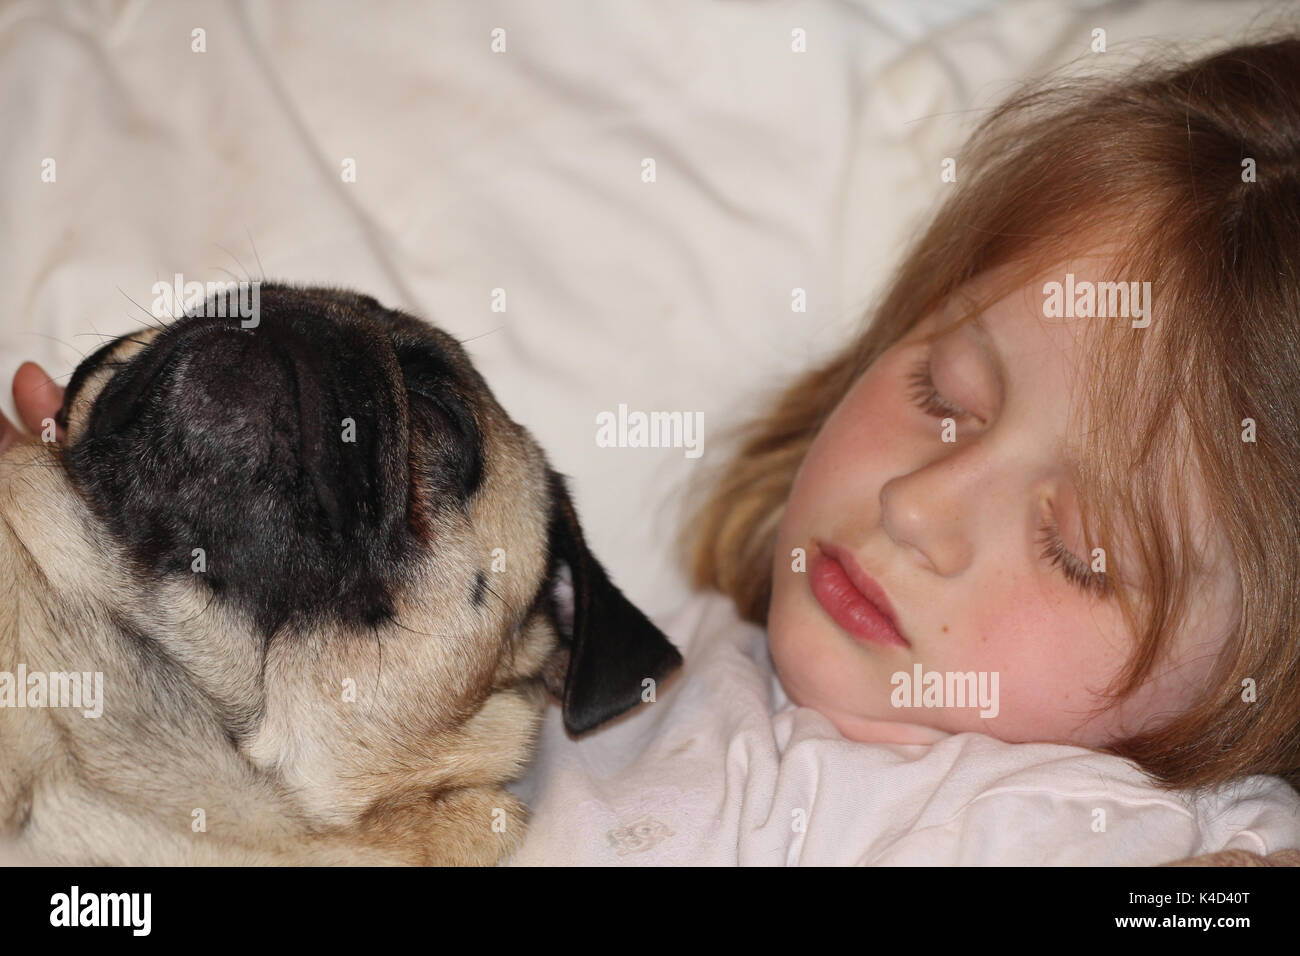 Dog Sleeping In The Bed Of A Child - Stock Image